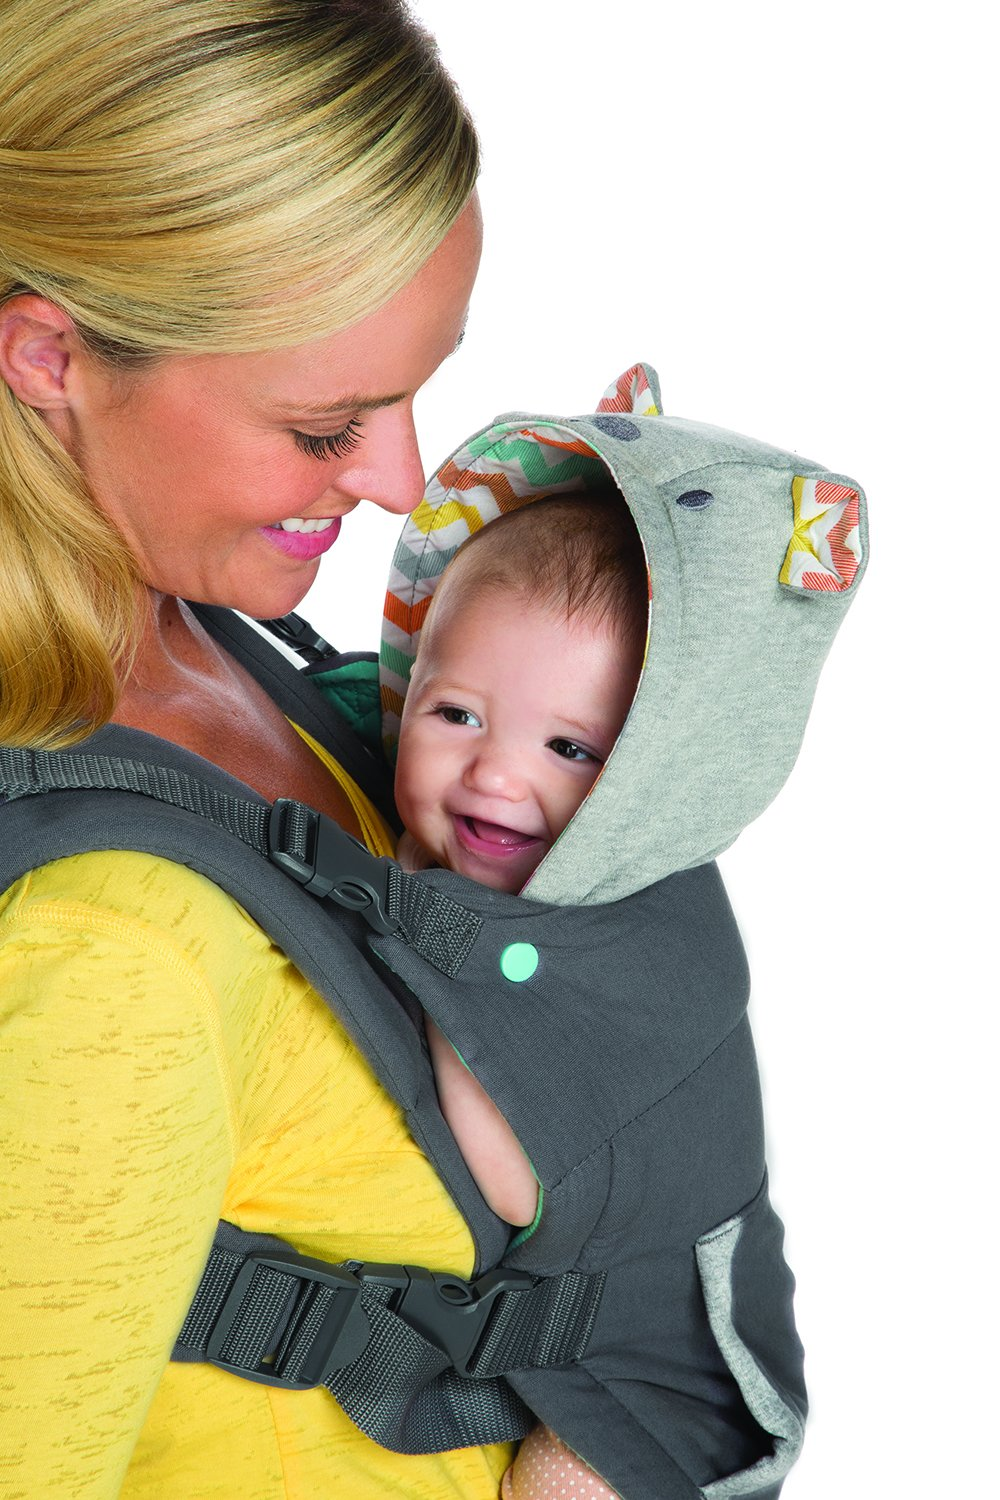 Infantino Cuddle Up Ergonomic Hoodie Carrier, Grey Infantino Fully safety tested Carries children from 12-40lbs (5.4 - 18.1 kgs) 9